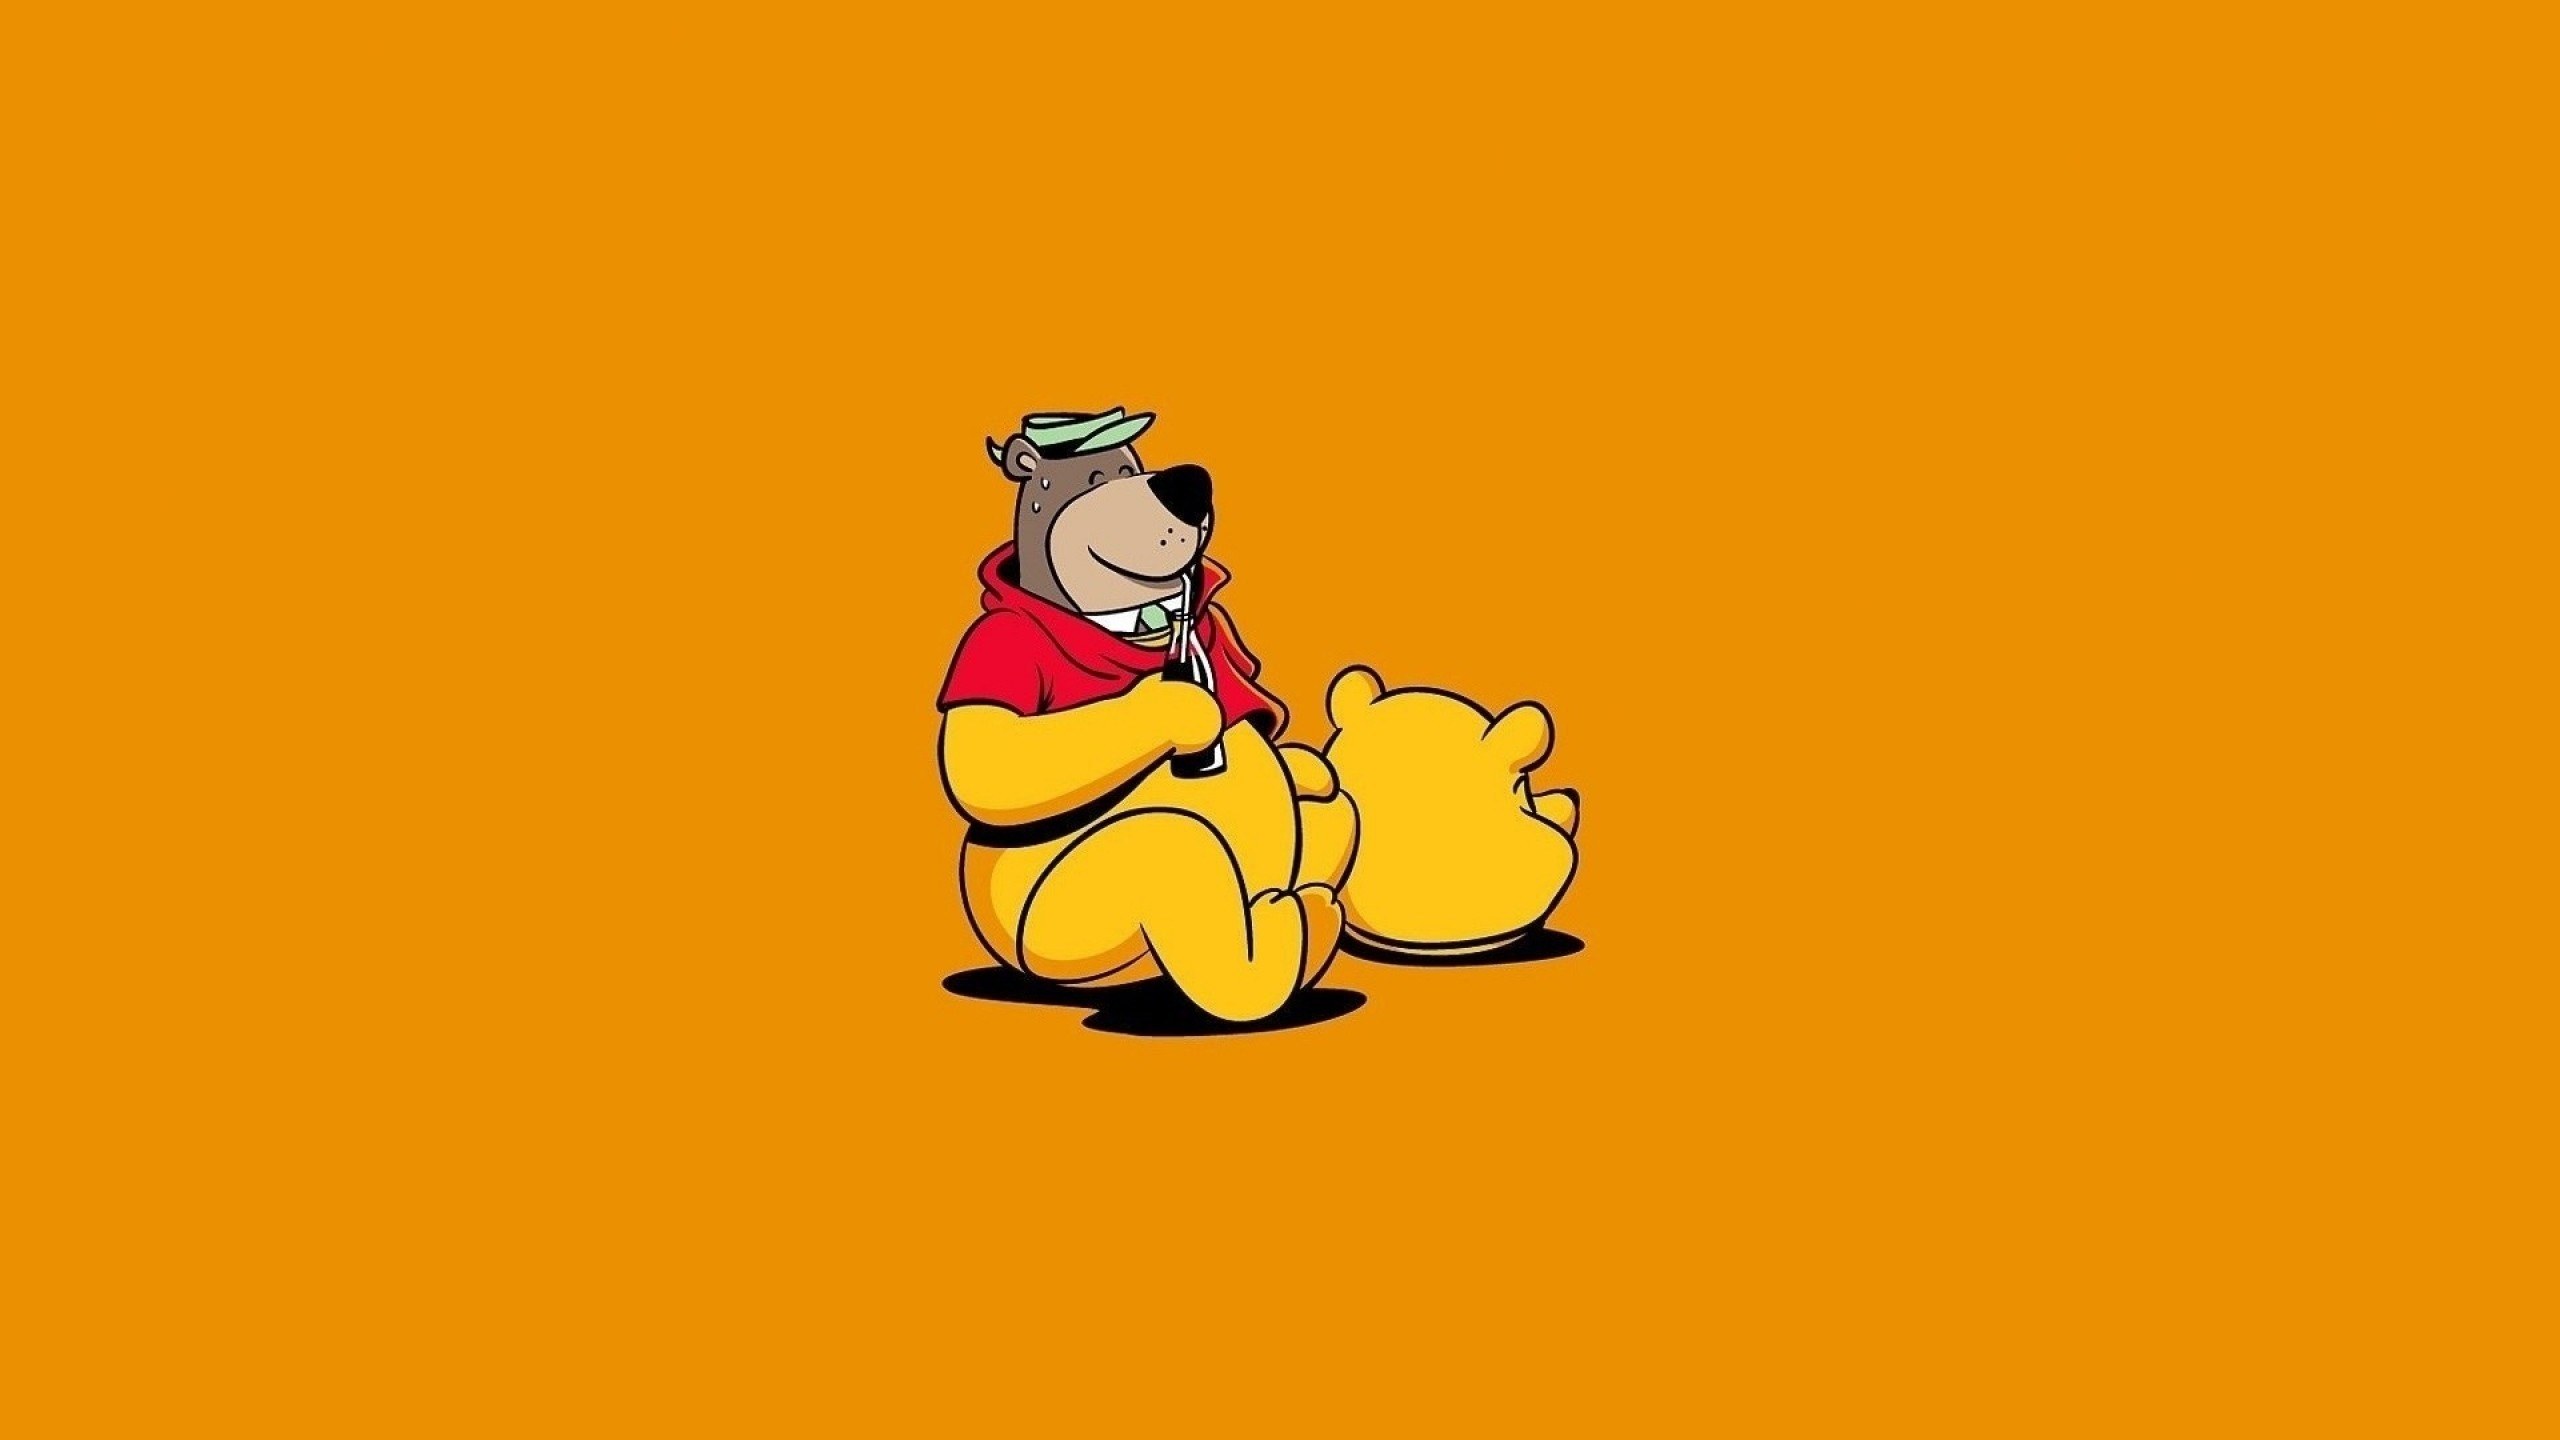 Wallpaper Pooh Bear 56 Images